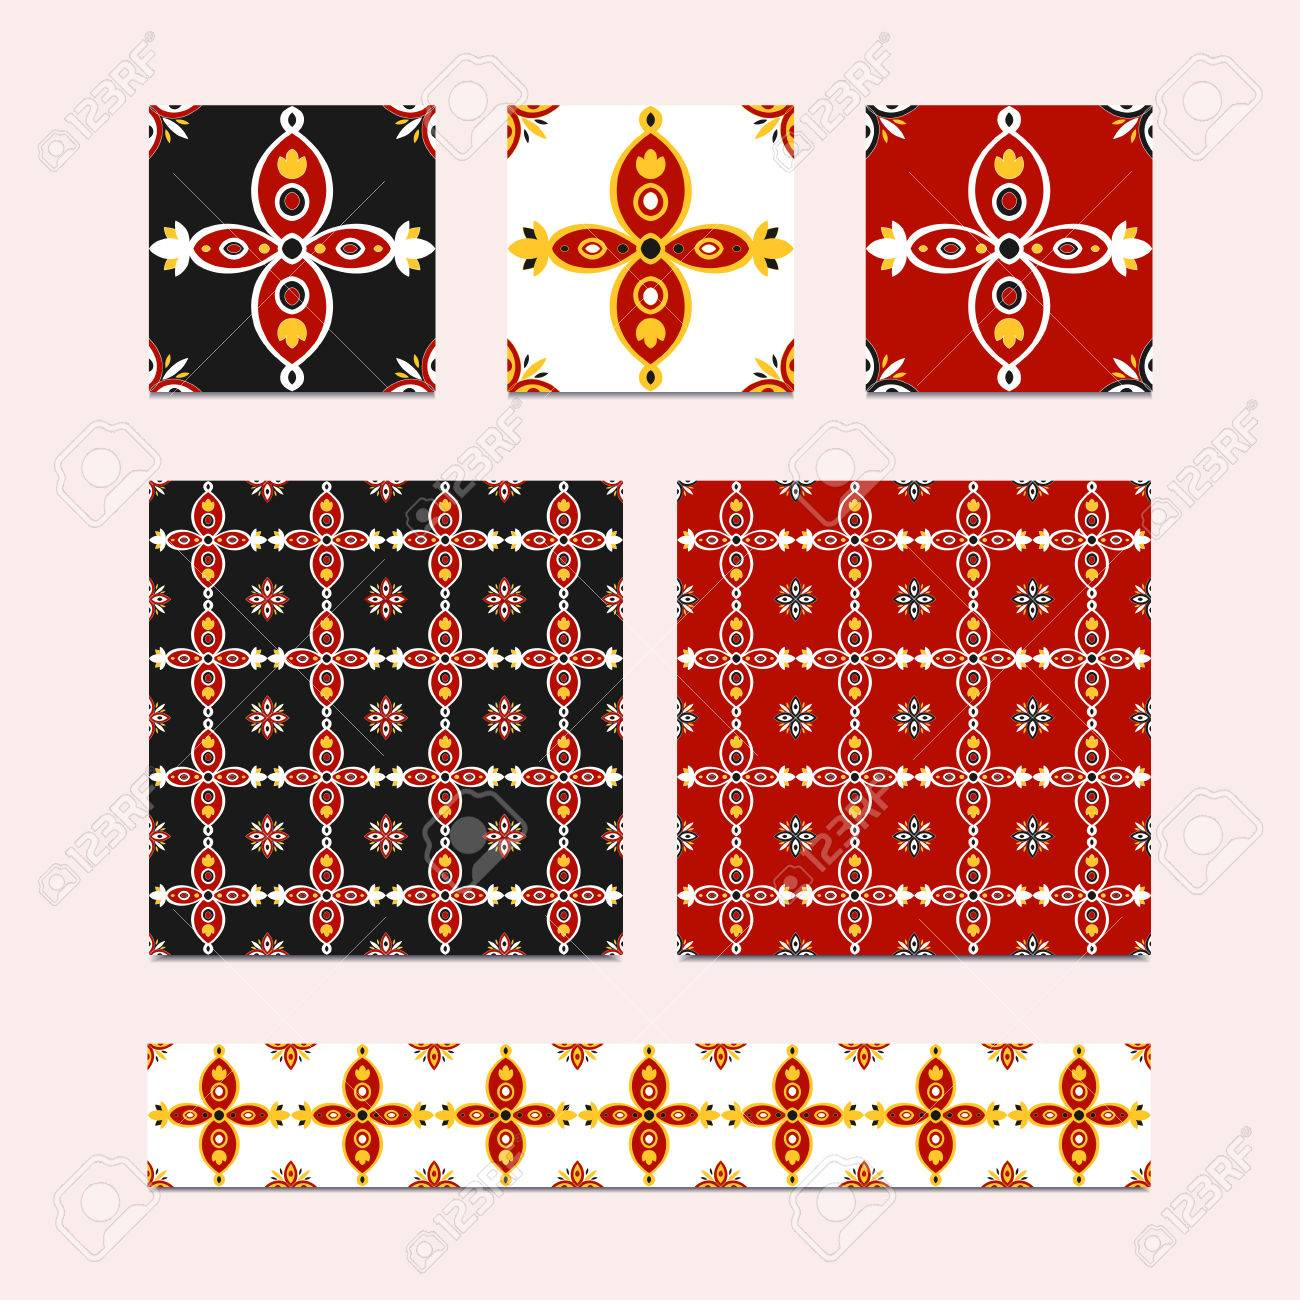 Vector Set Of 3 Ceramic Tiles 2 Tiled Patterns And Border Design Royalty Free Cliparts Vectors And Stock Illustration Image 77612352